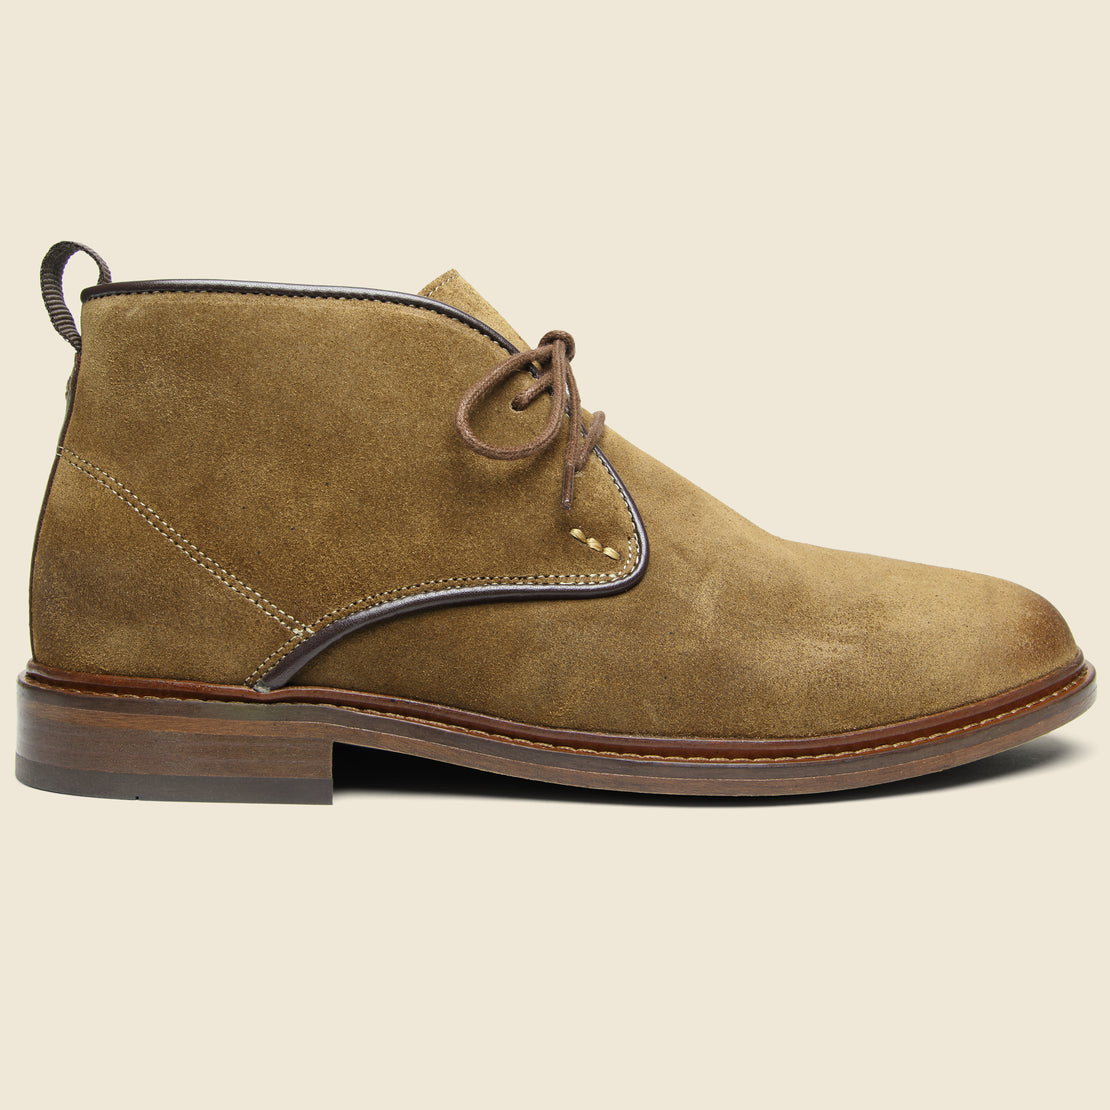 Shoe the Bear Dalton Suede Chukka - Brown